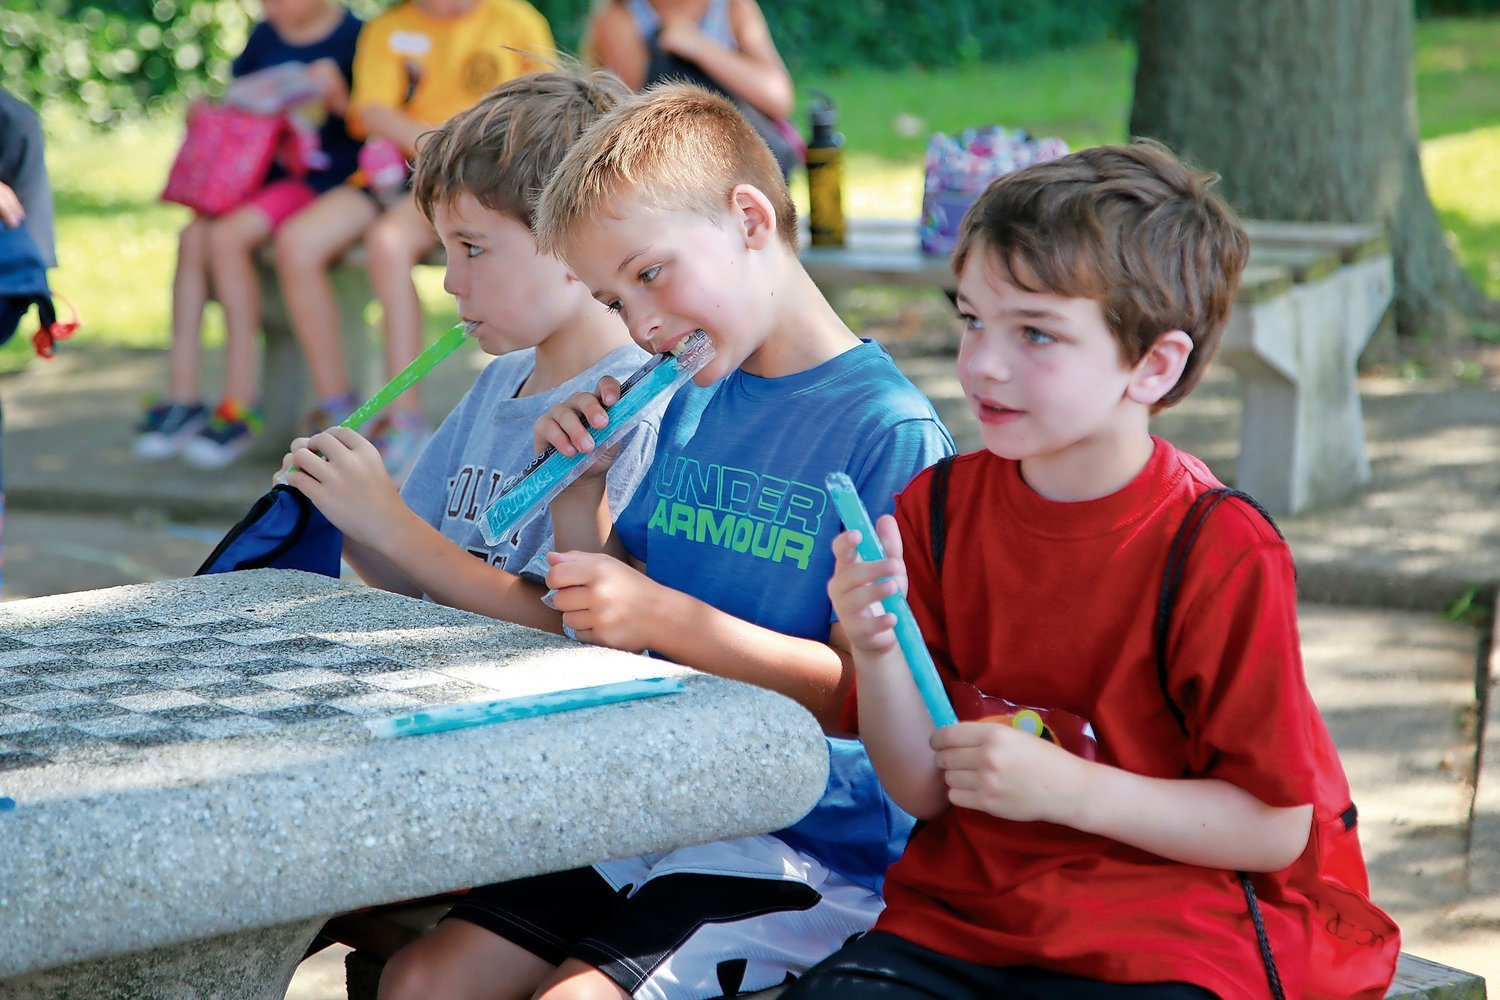 Last year, 7-year-olds James Muldoon, Kevin Benson and Drew Cowley cooled off with some ices at the Summer Playground program. This year, campers will maintain six feet apart, among following other safety precautions, but there will still be ice pops for the kids.